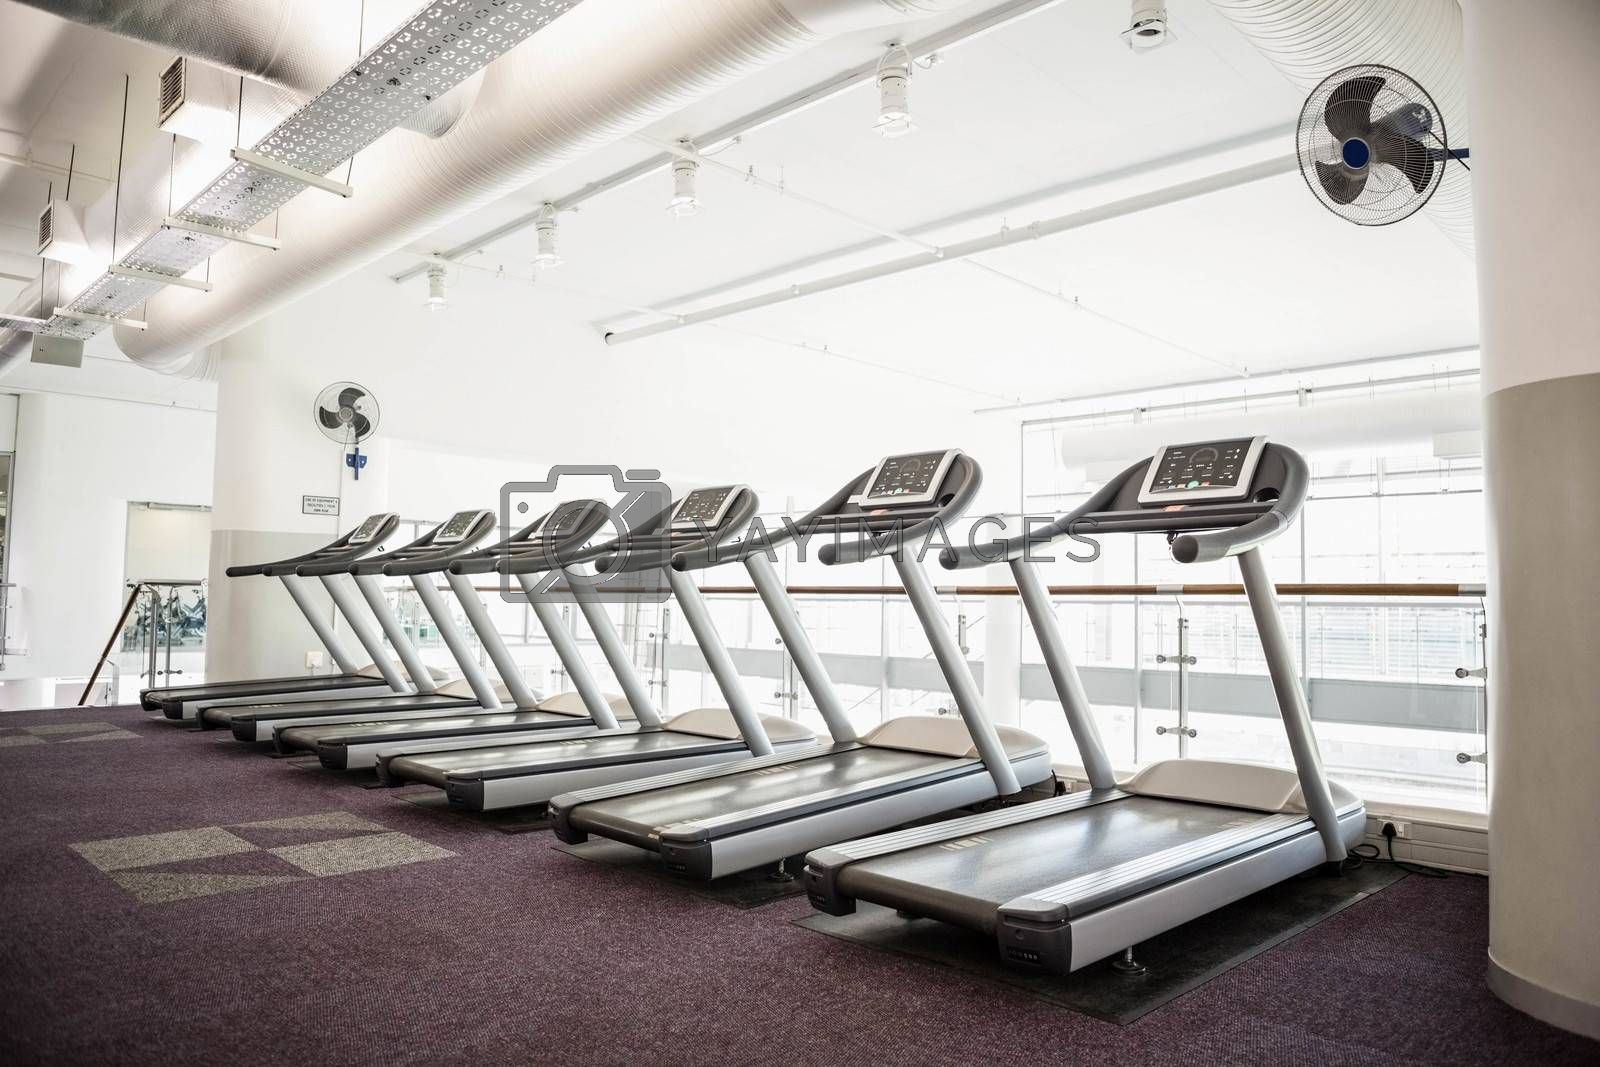 Gym with no people by Wavebreakmedia